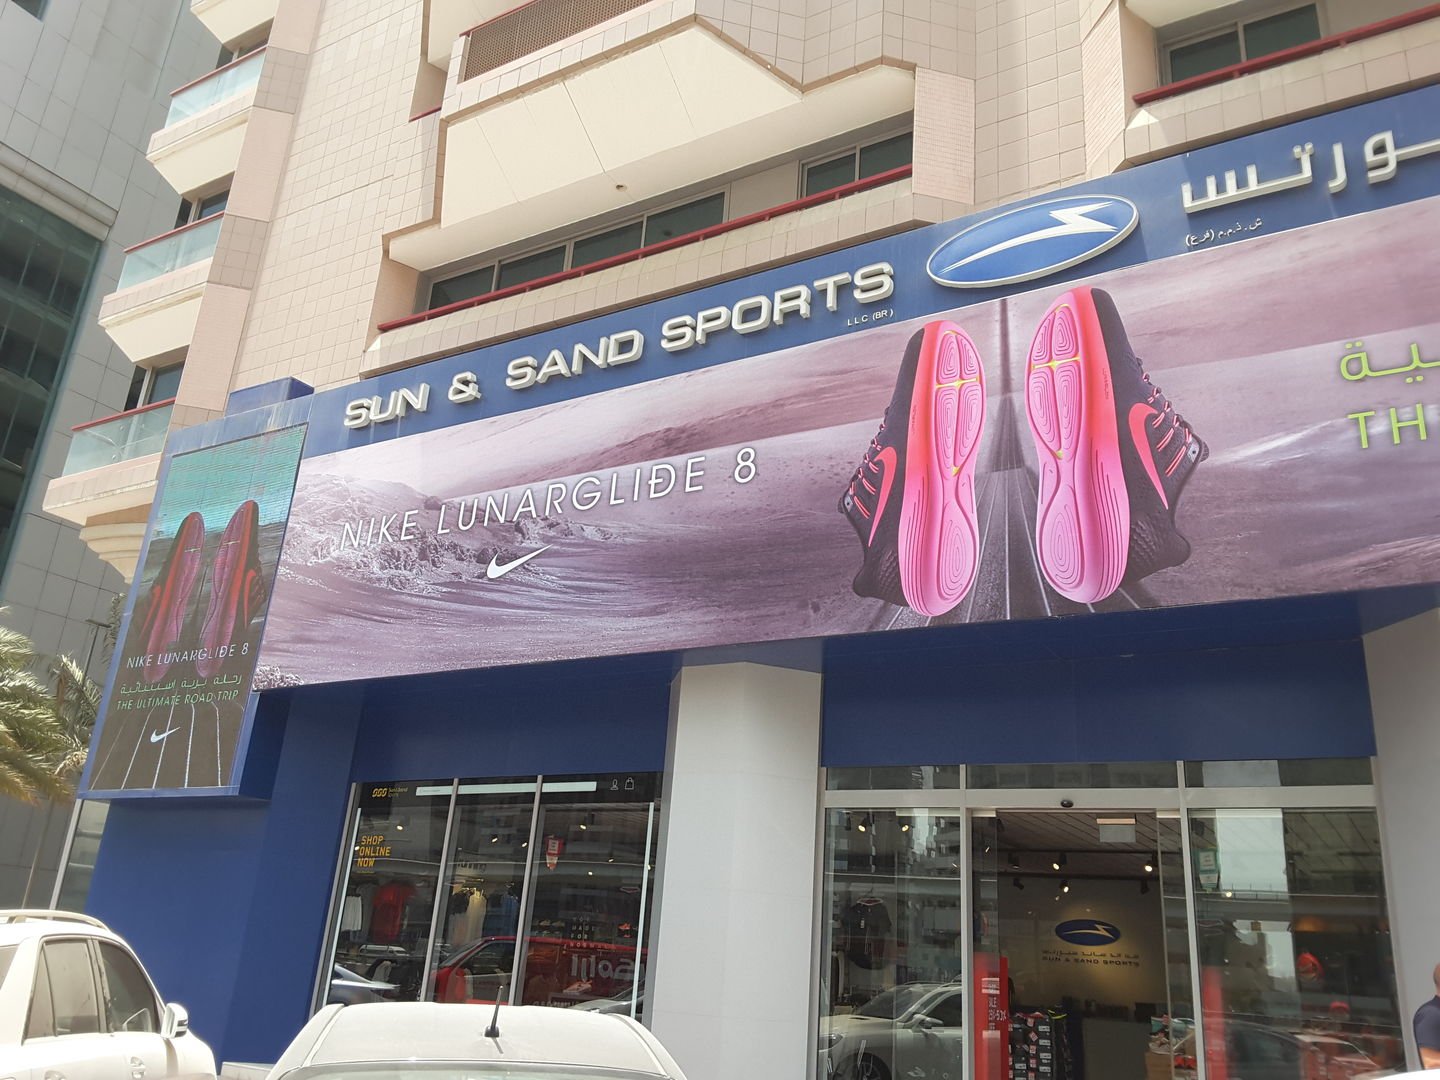 HiDubai-business-sun-sand-sports-shopping-sporting-goods-equipment-trade-centre-1-dubai